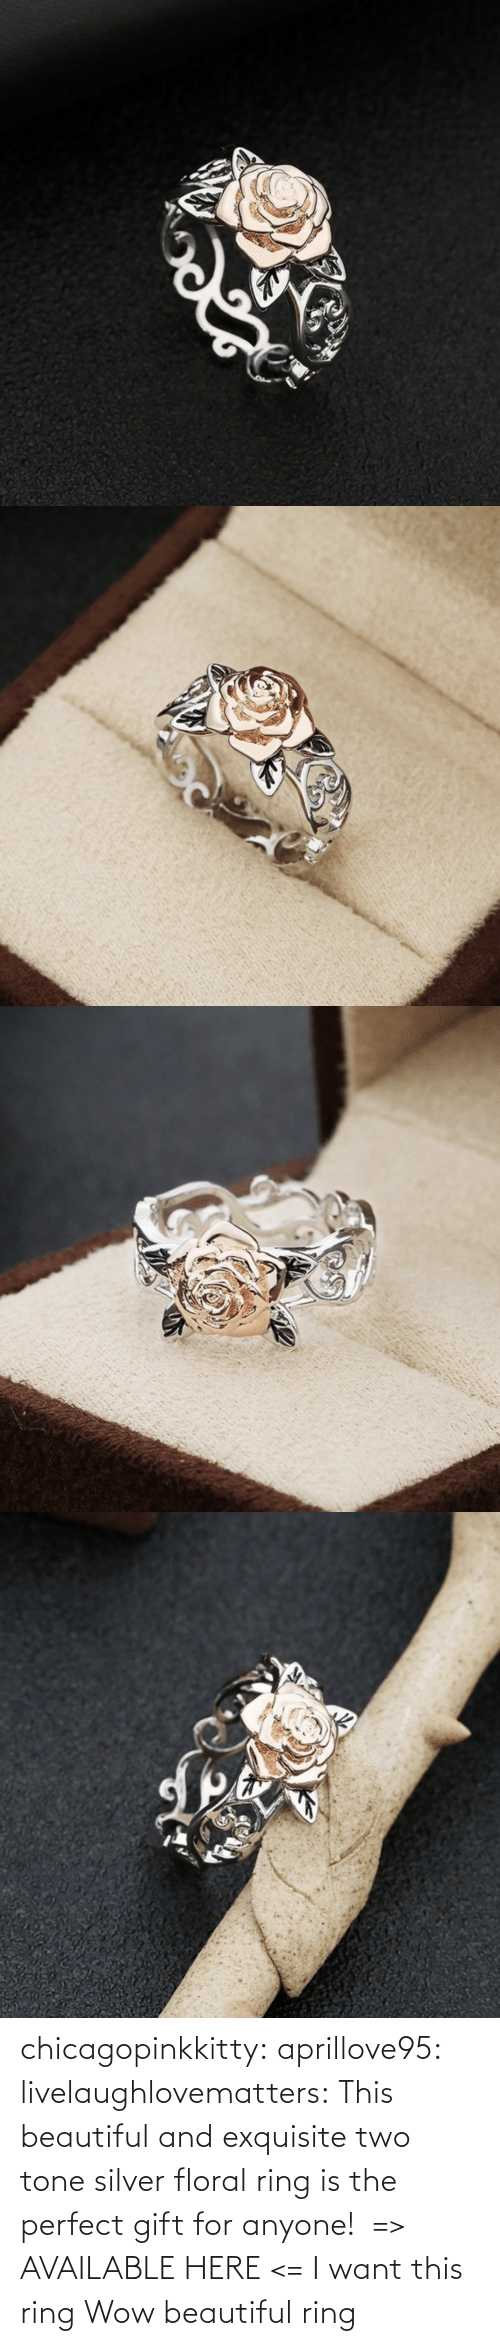 gift: chicagopinkkitty: aprillove95:  livelaughlovematters:  This beautiful and exquisite two tone silver floral ring is the perfect gift for anyone! => AVAILABLE HERE <=    I want this ring     Wow beautiful ring